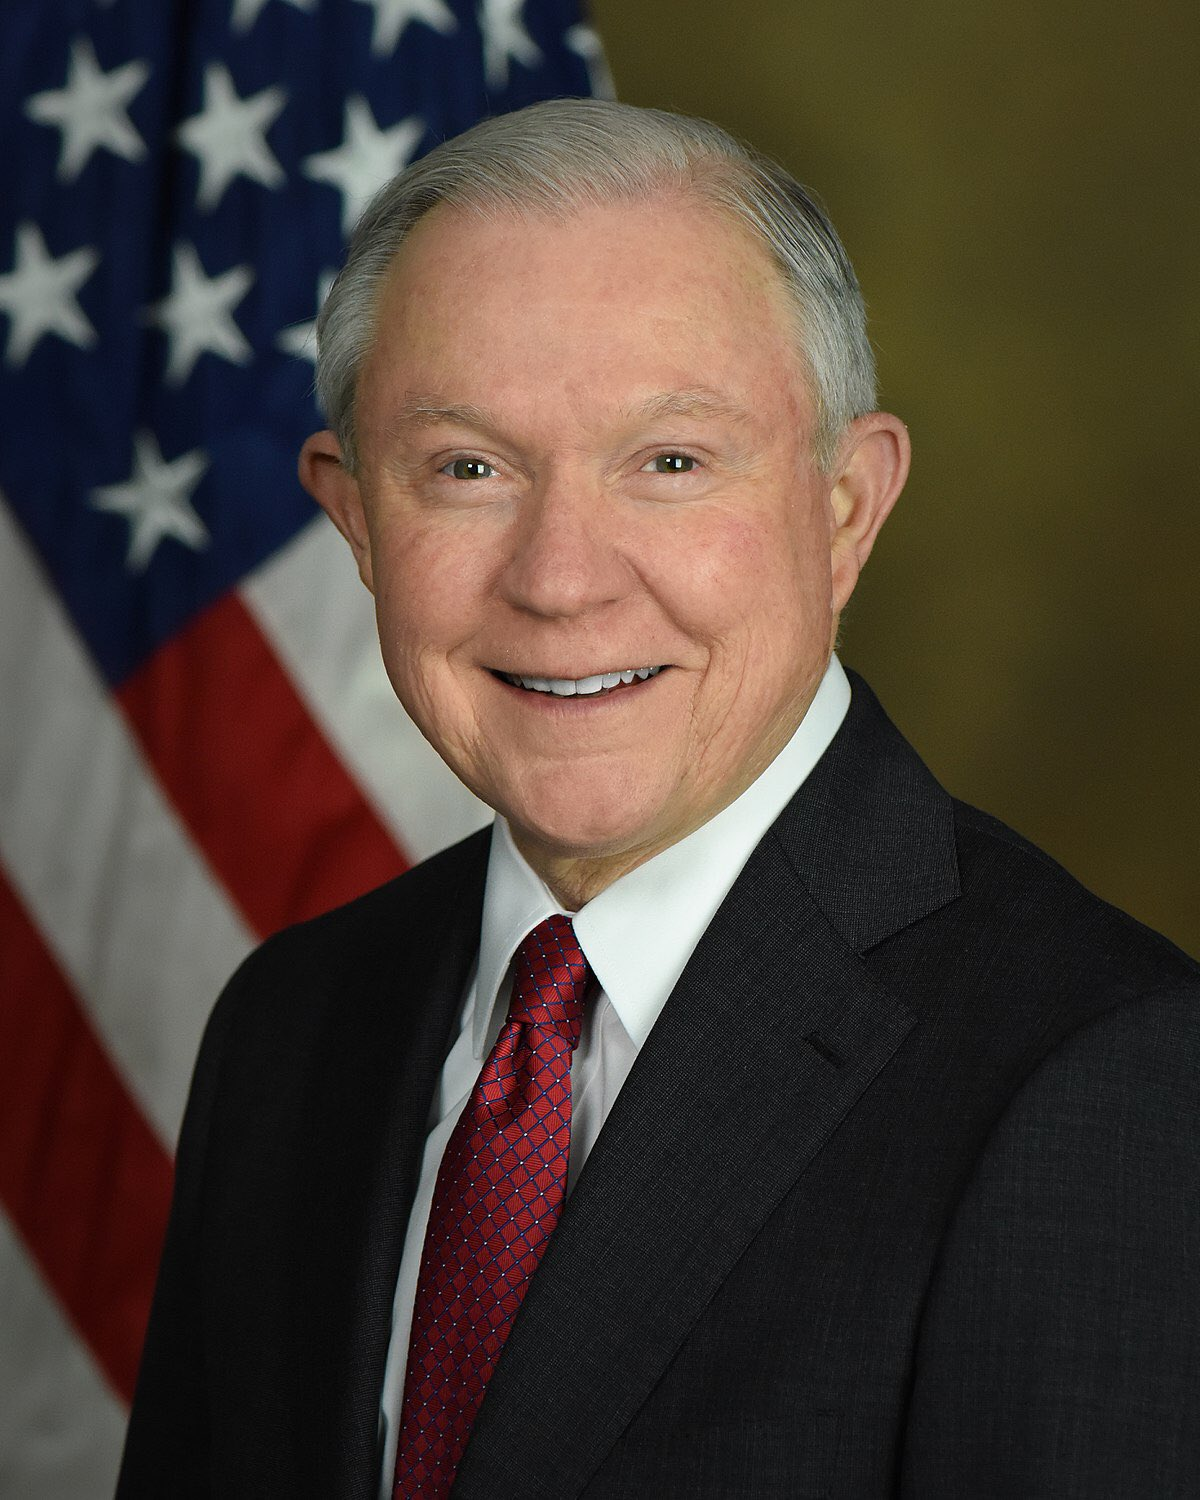 Happy birthday to Alabama\s pride and joy, US Attorney General Jeff Sessions